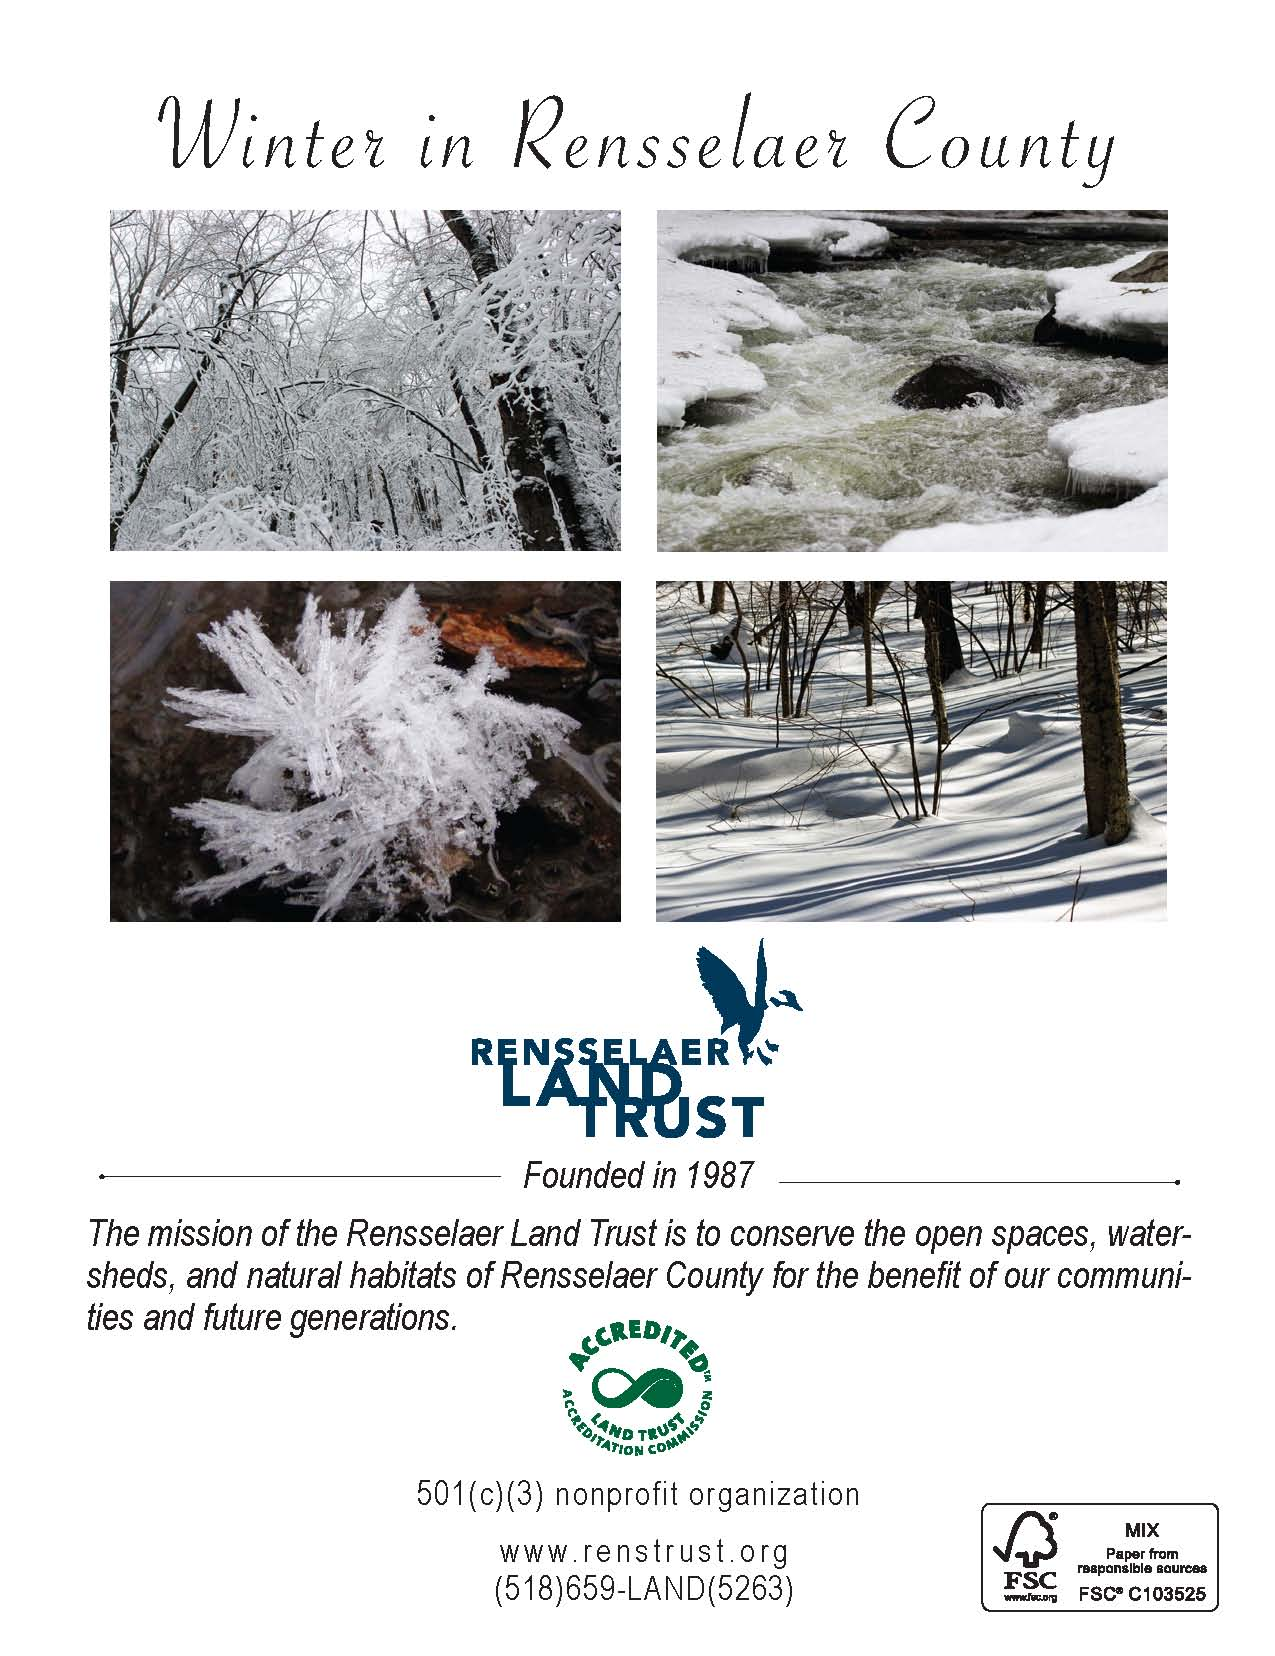 http://www.renstrust.org/images/stories/Shop/rlt_notecards_winter_coversheet.jpg